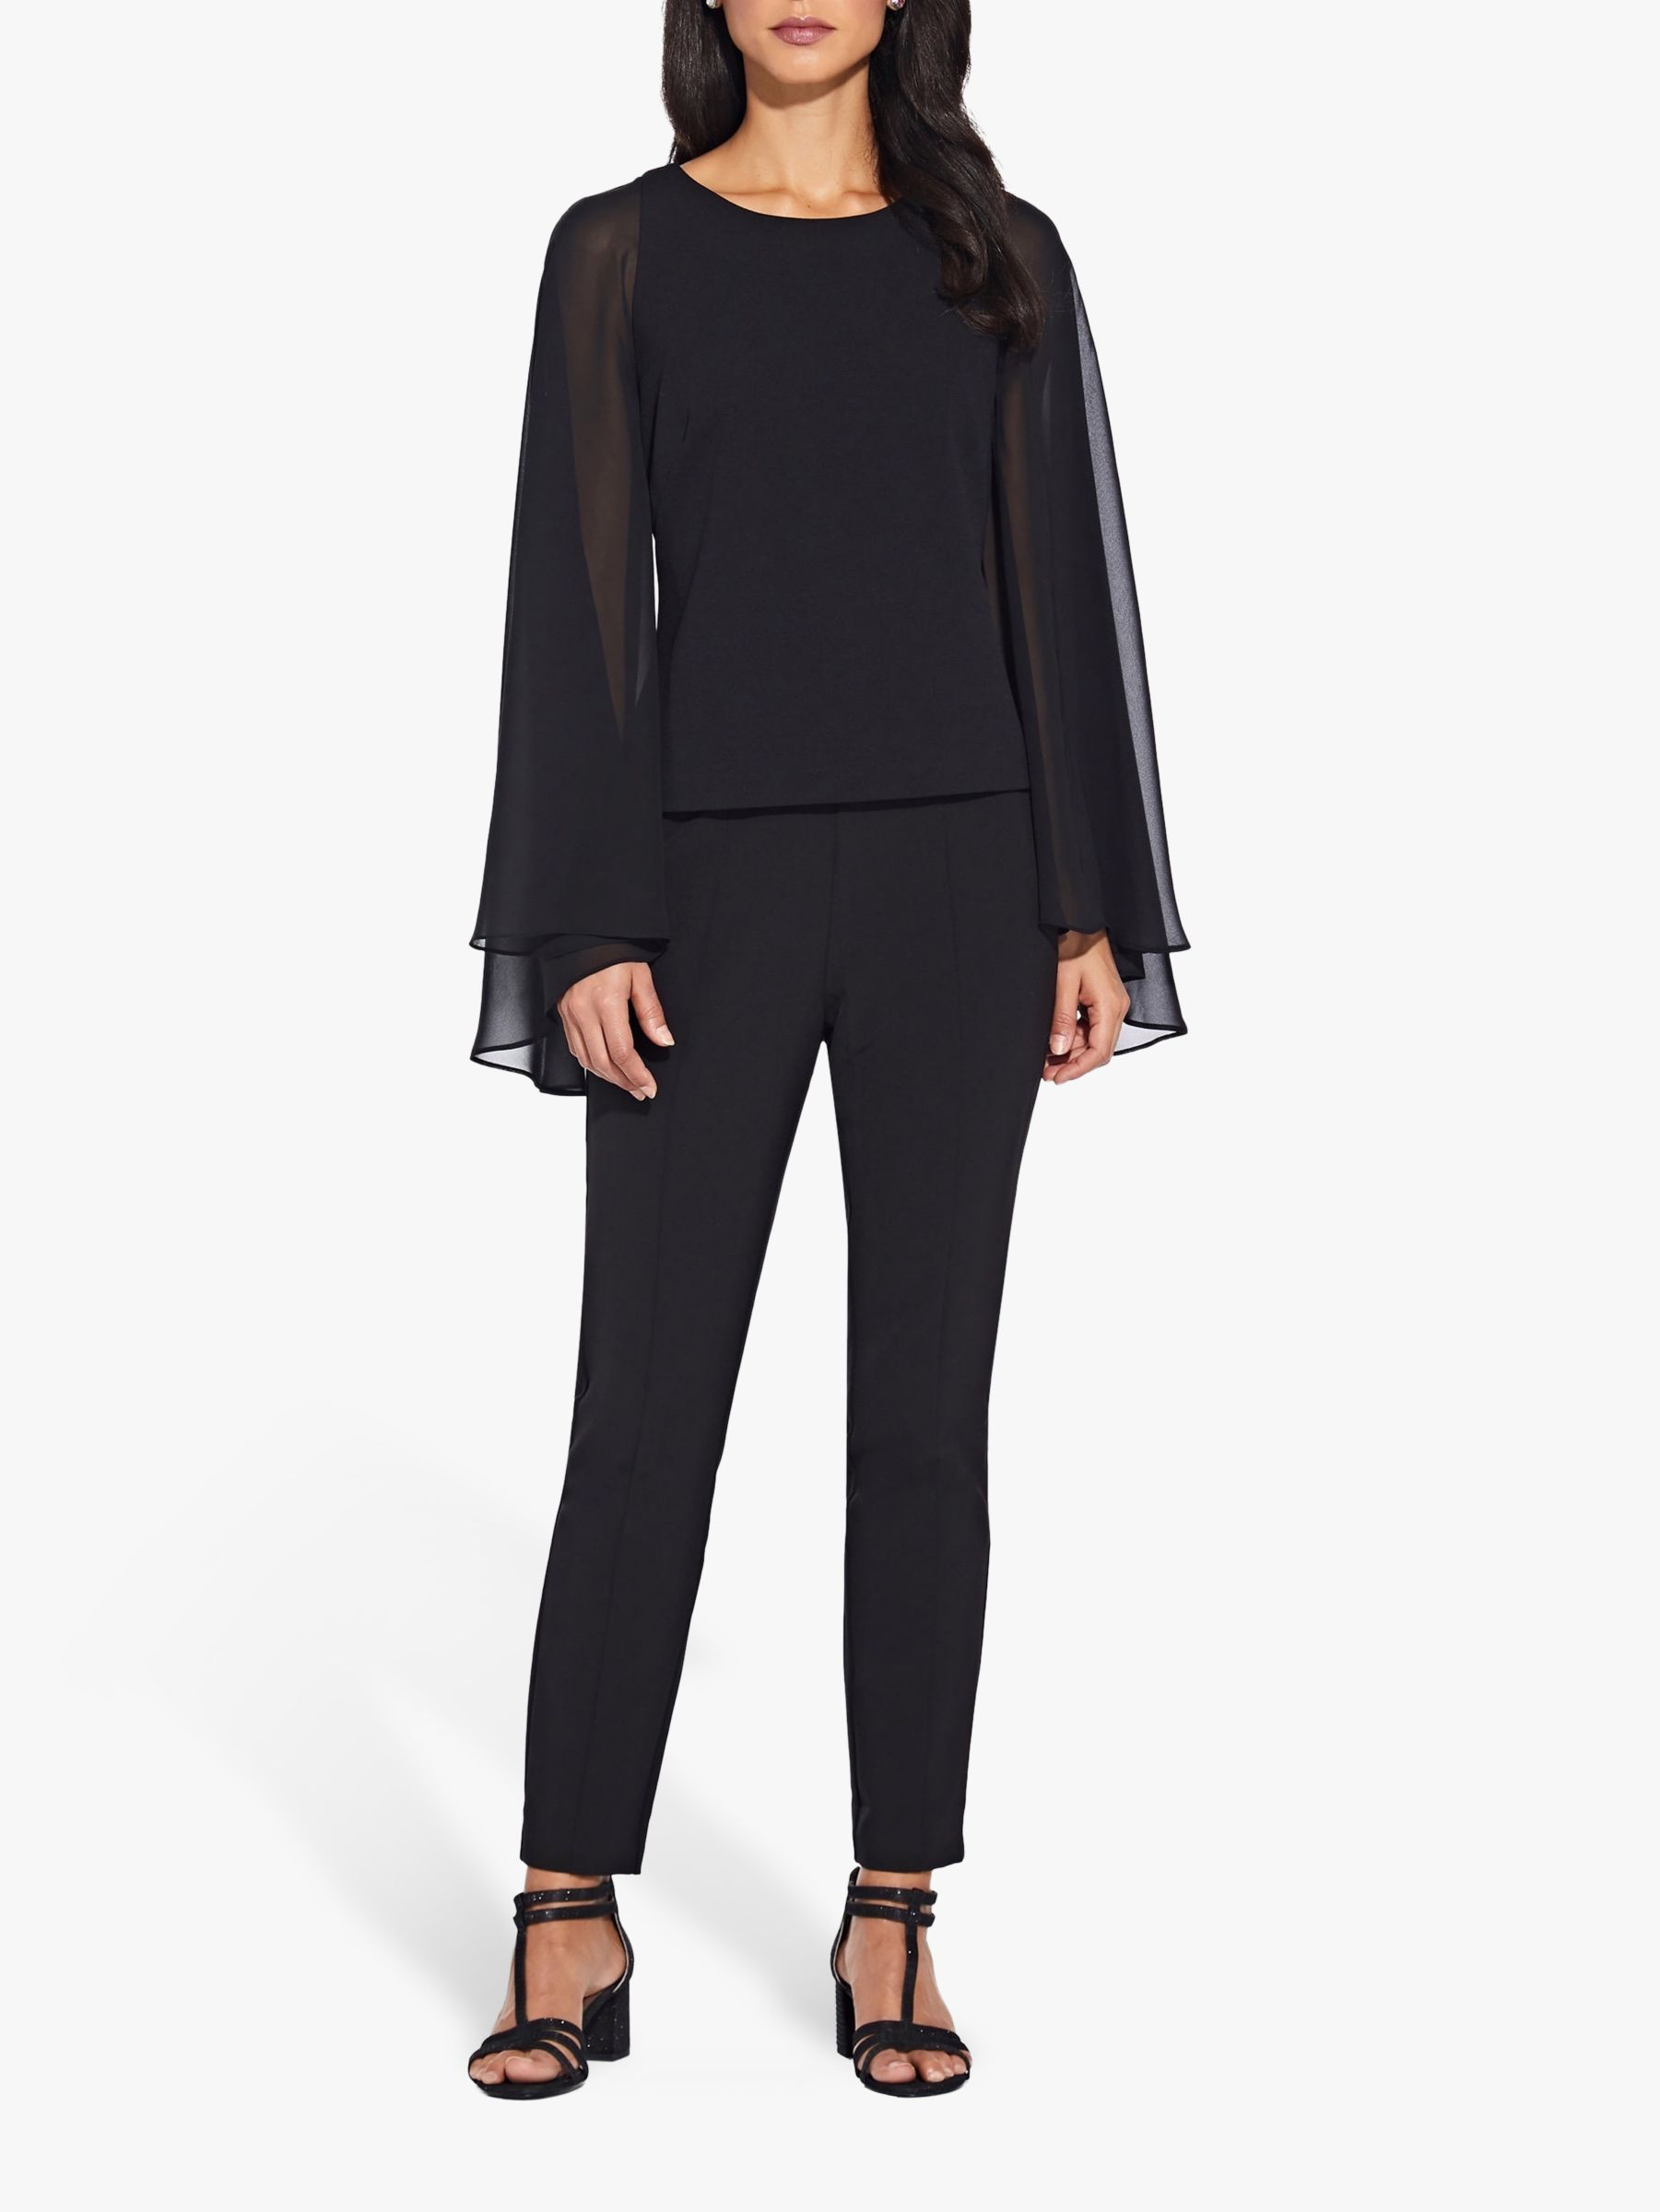 Adrianna Papell Adrianna Papell Crepe Chiffon Cape Top, Black